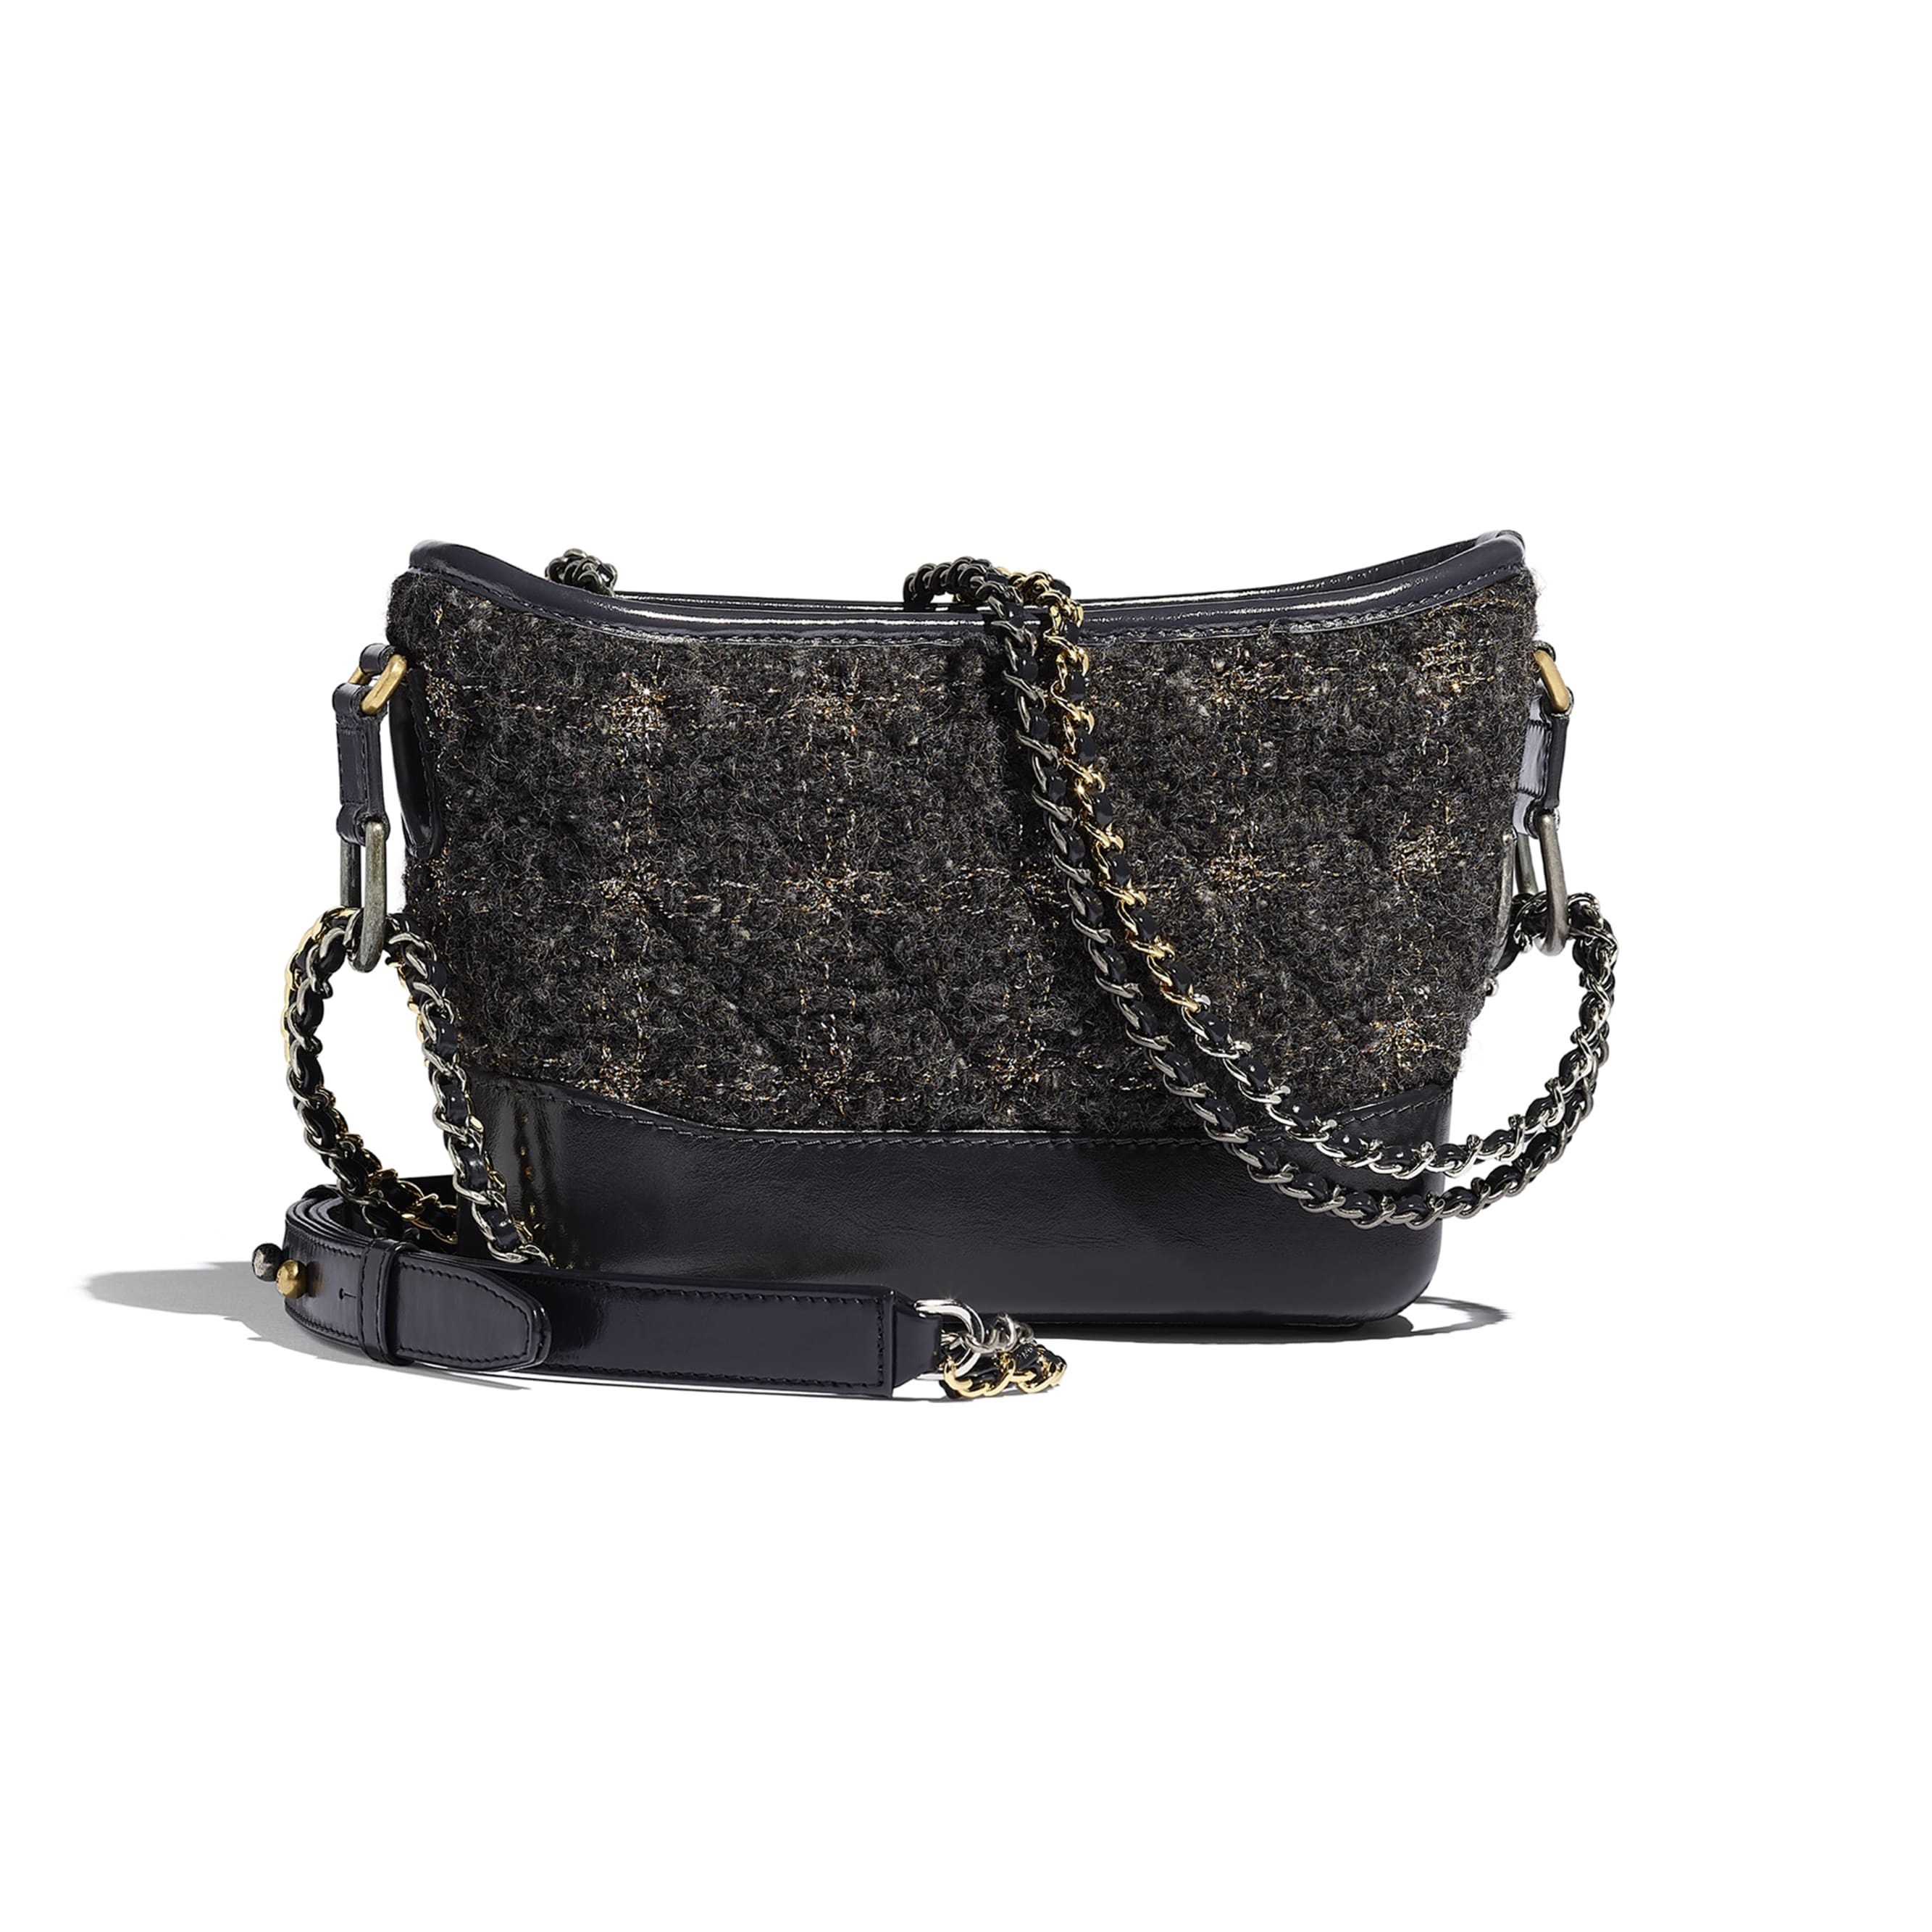 CHANEL'S GABRIELLE Small Hobo Bag - Gray, Golden & Silver - Wool Tweed, Calfskin, Gold-Tone & Silver-Tone Metal - Alternative view - see standard sized version